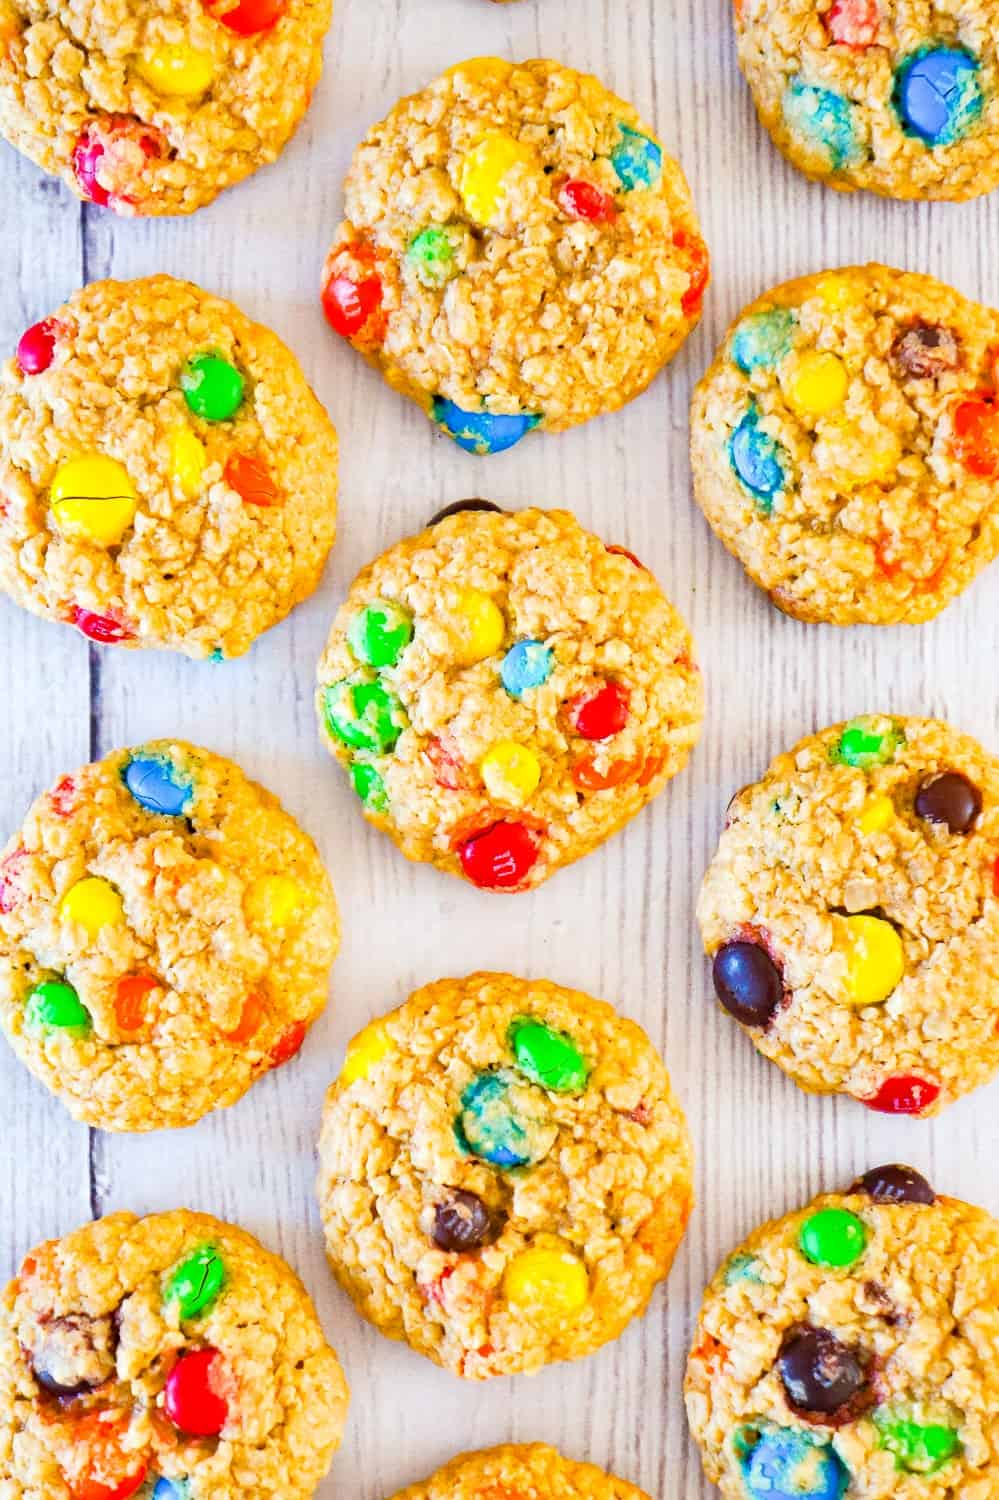 Monster Cookies are an easy no flour cookie recipe perfect for peanut butter lovers. These chewy peanut butter oatmeal cookies are loaded with M&M's.